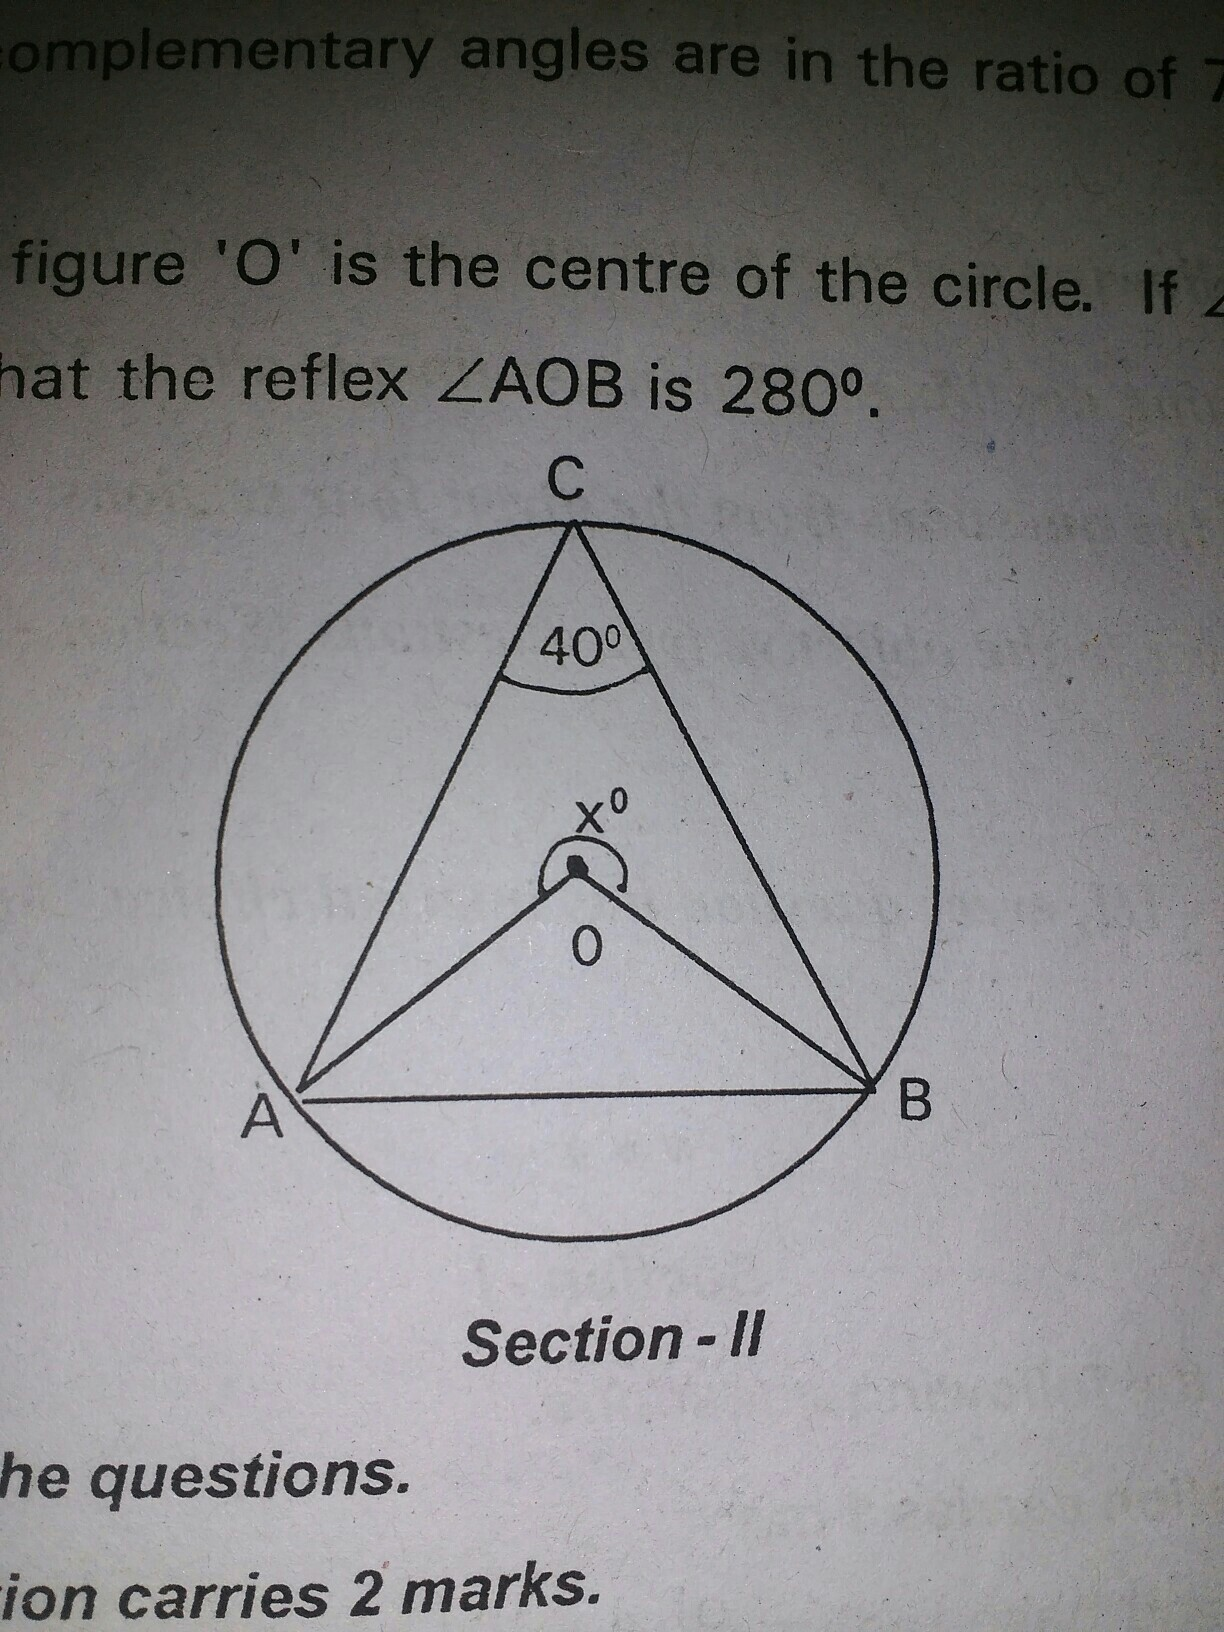 In the given figure O is the center of the circle  If angle